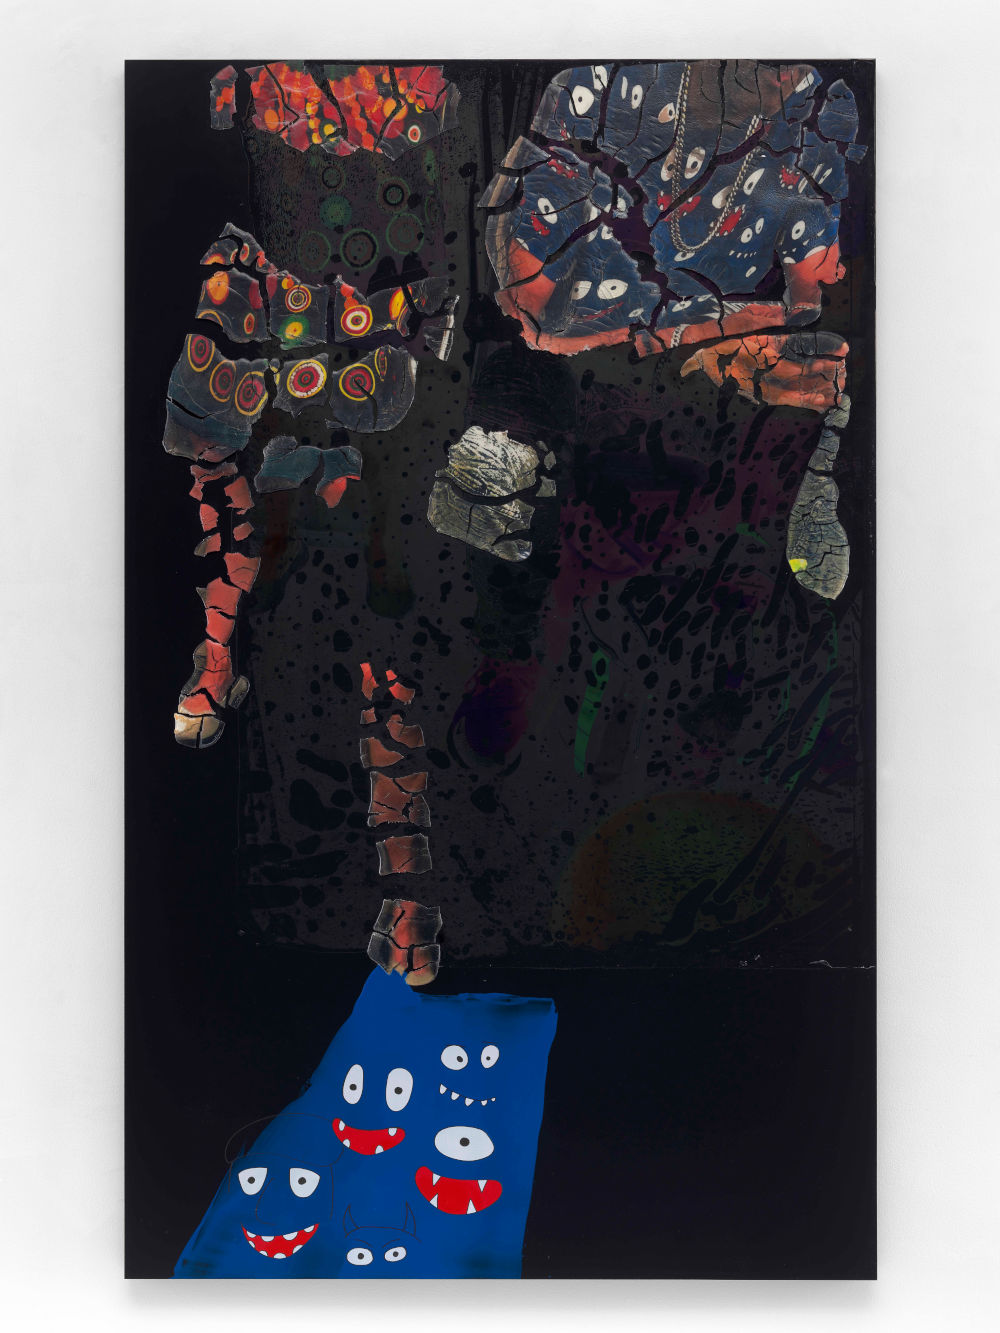 Seth Price, Subway: Entering Social Space, 2019. Acrylic polymer, acrylic paint, relay print on polyester, plastic, wood, metal, 197.5 x 122 cm. Courtesy of the artist and Galerie Chantal Crousel, Paris. Photo : Martin Argyroglo